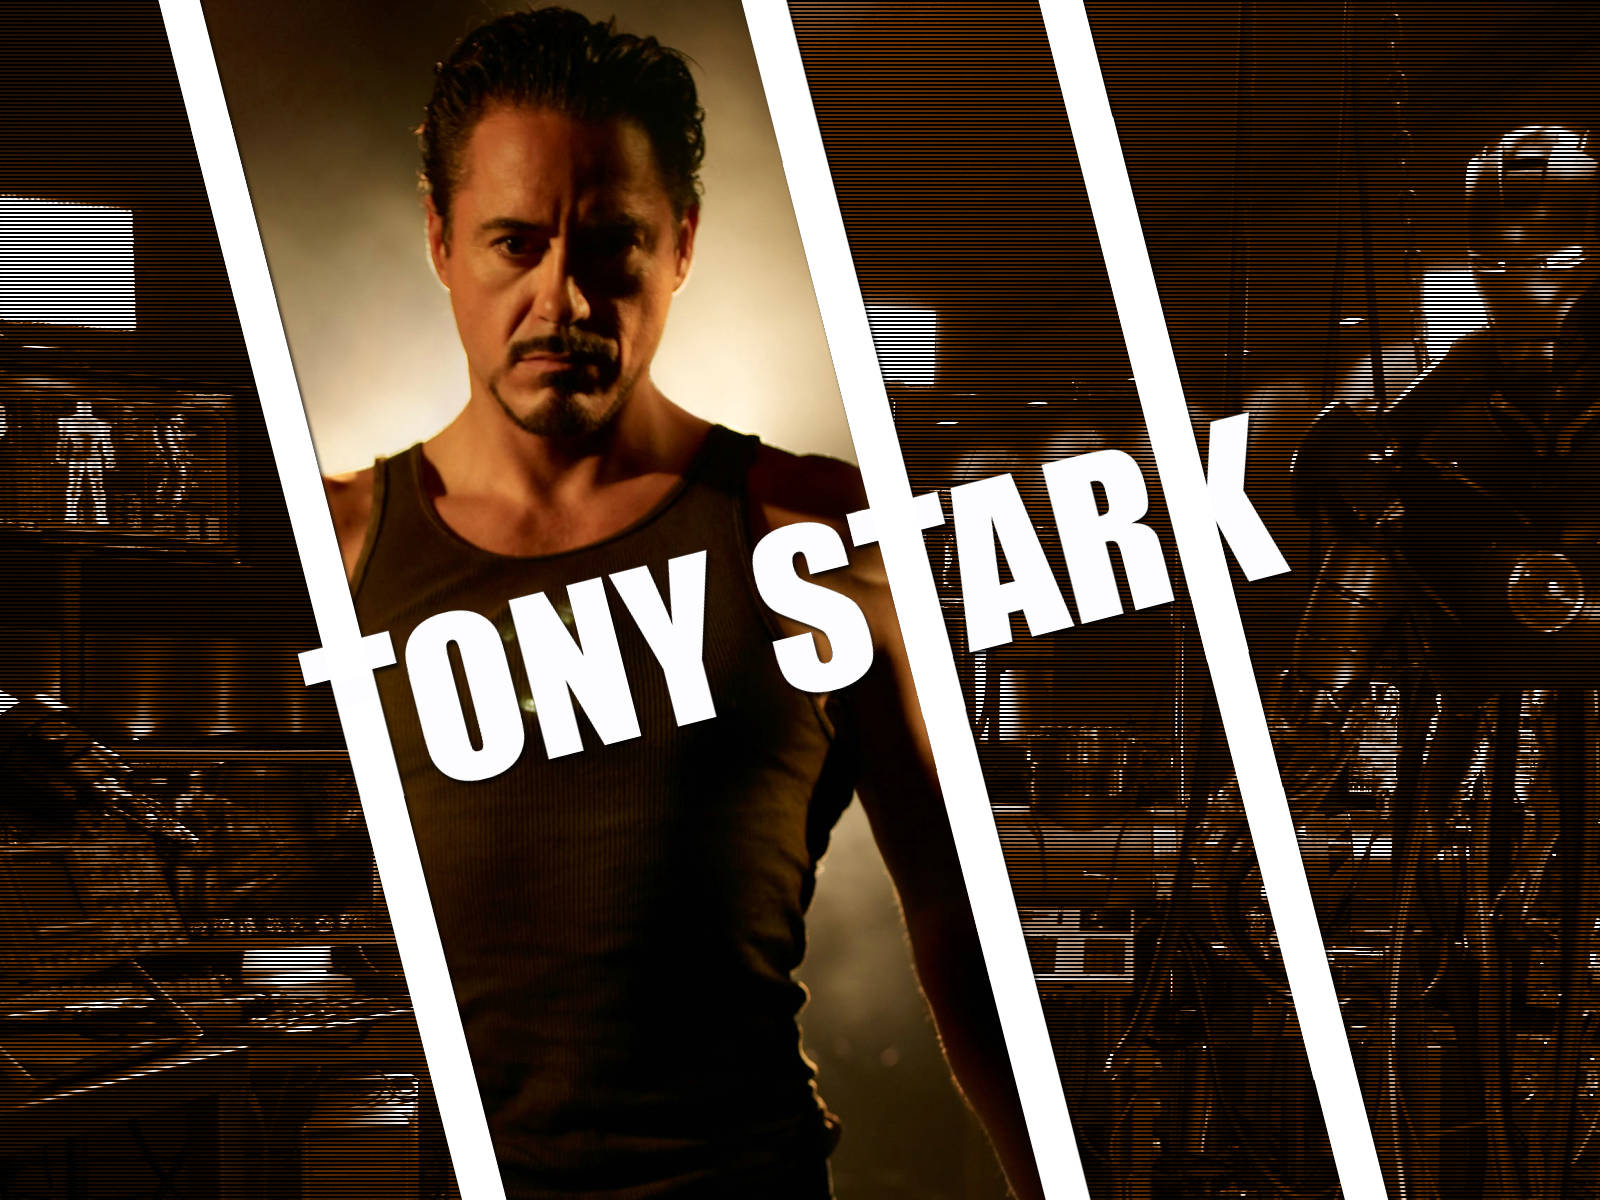 iron man 3 images tony stark hd wallpaper and background photos